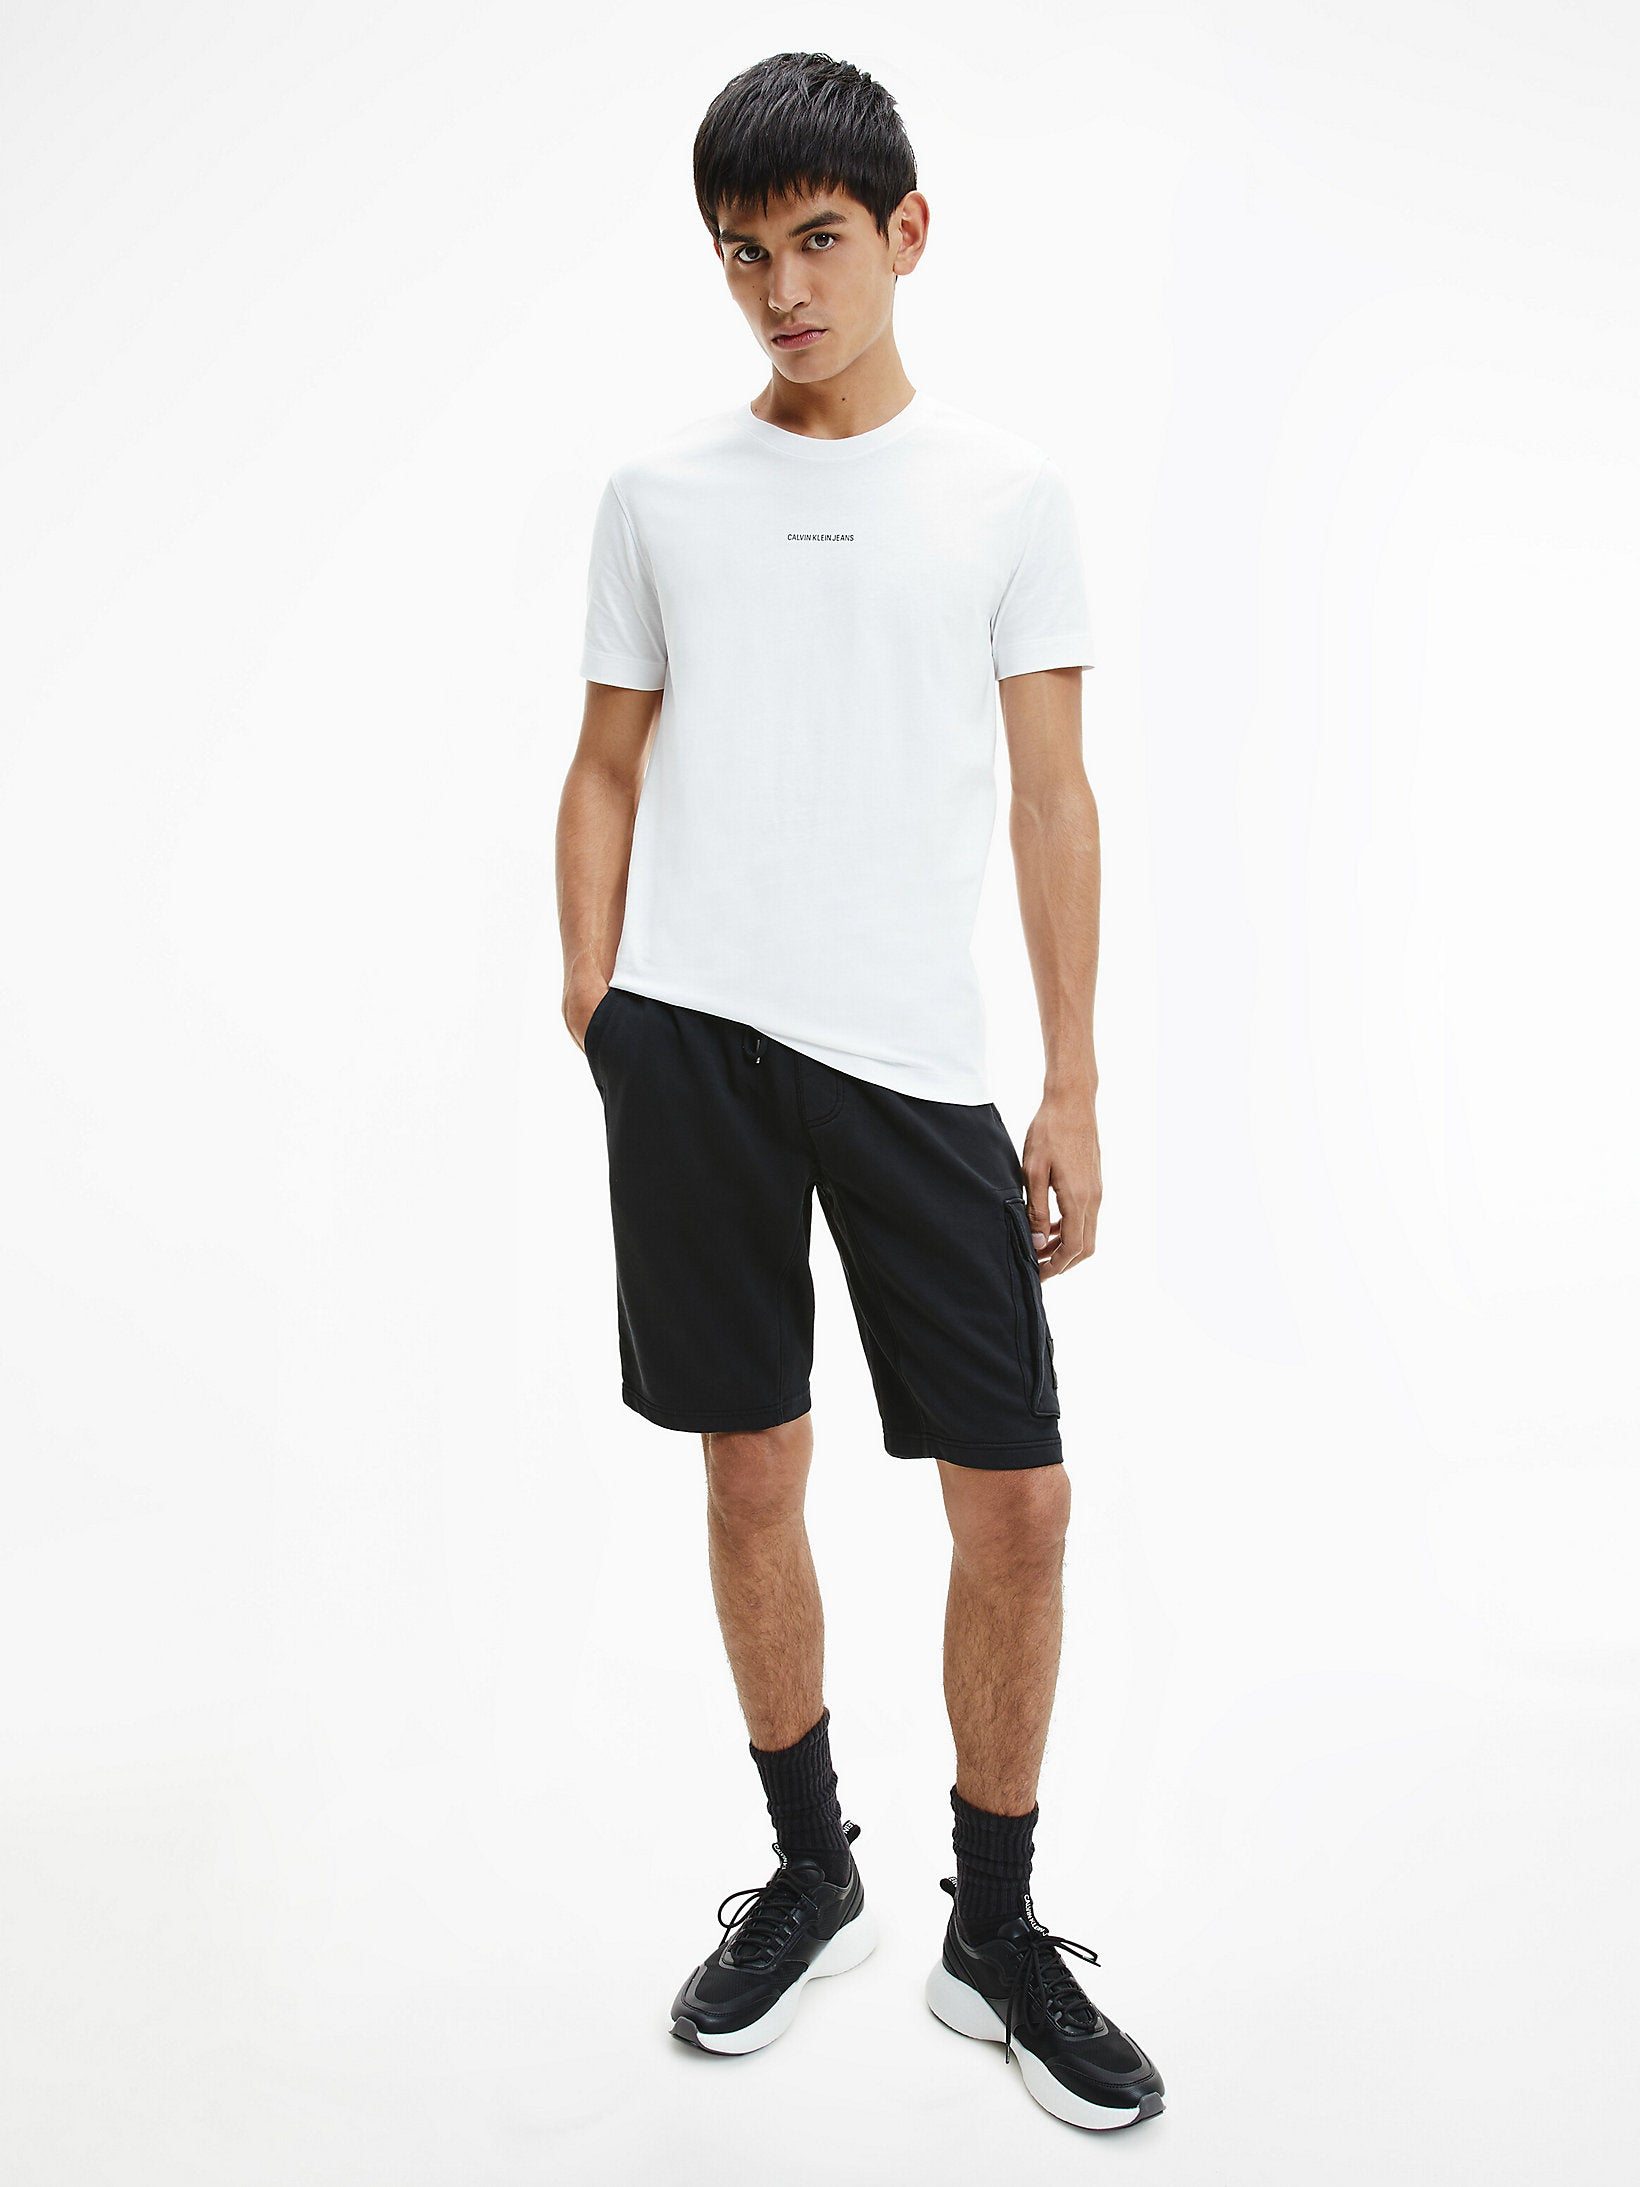 Calvin Klein Micro Branding Essentials T-shirt Bright White